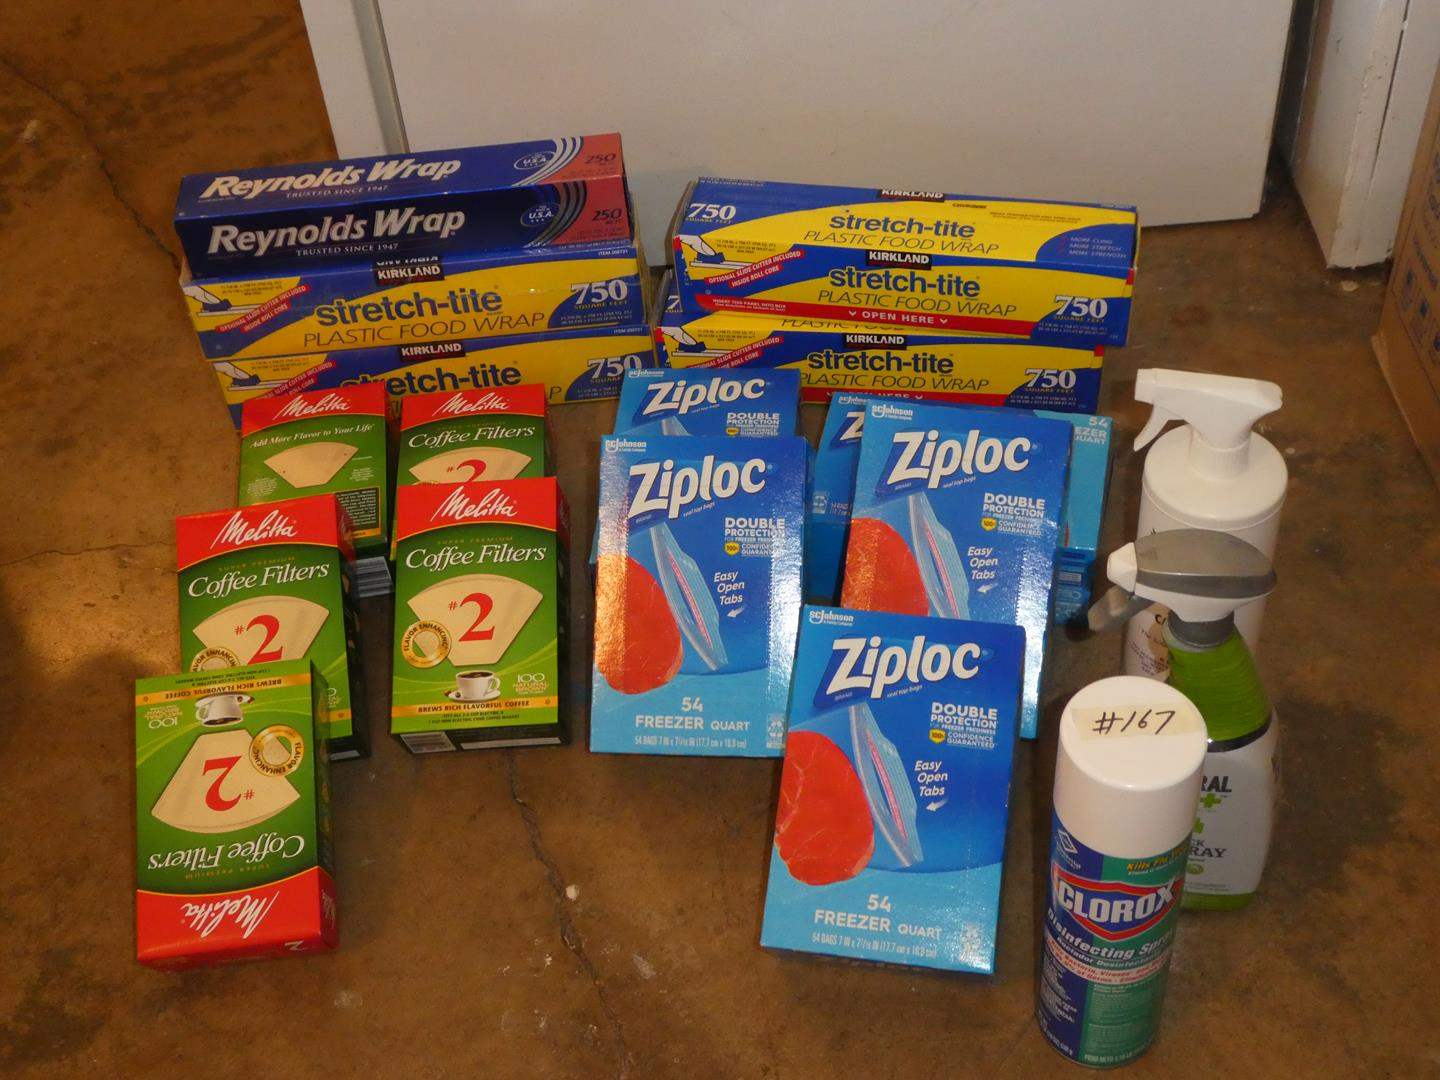 Lot # 167 - Coffee Filters, Reynolds Wrap, Stretch-Tite, Zip Lock Bags & Cleaning Supplies (main image)